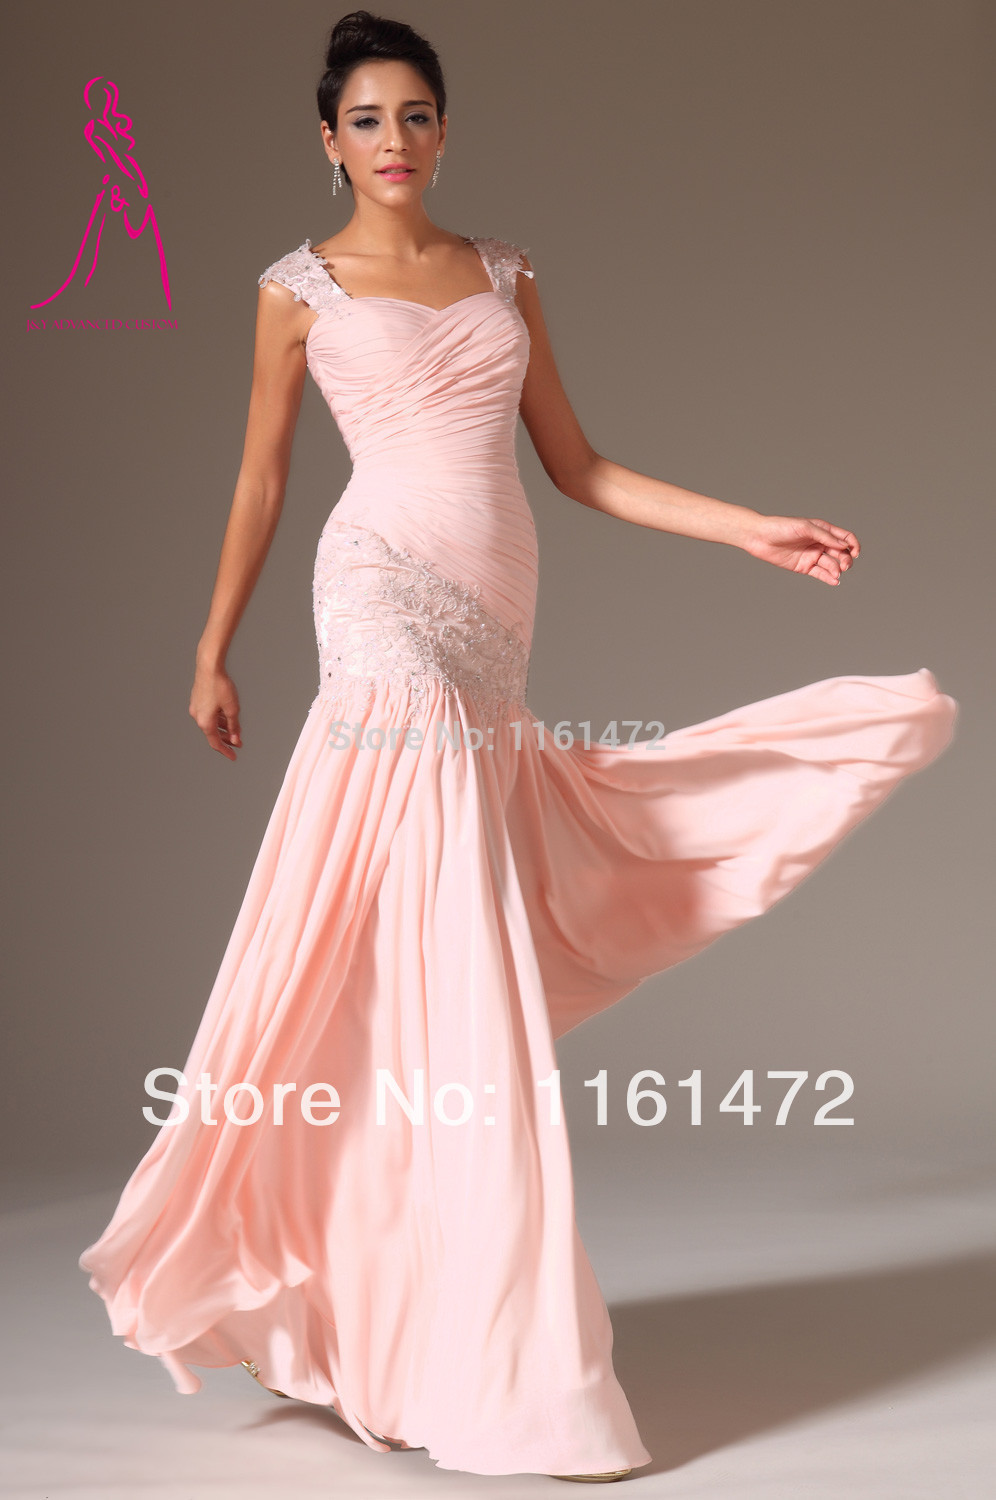 Formal Dresses San Diego | All Dress